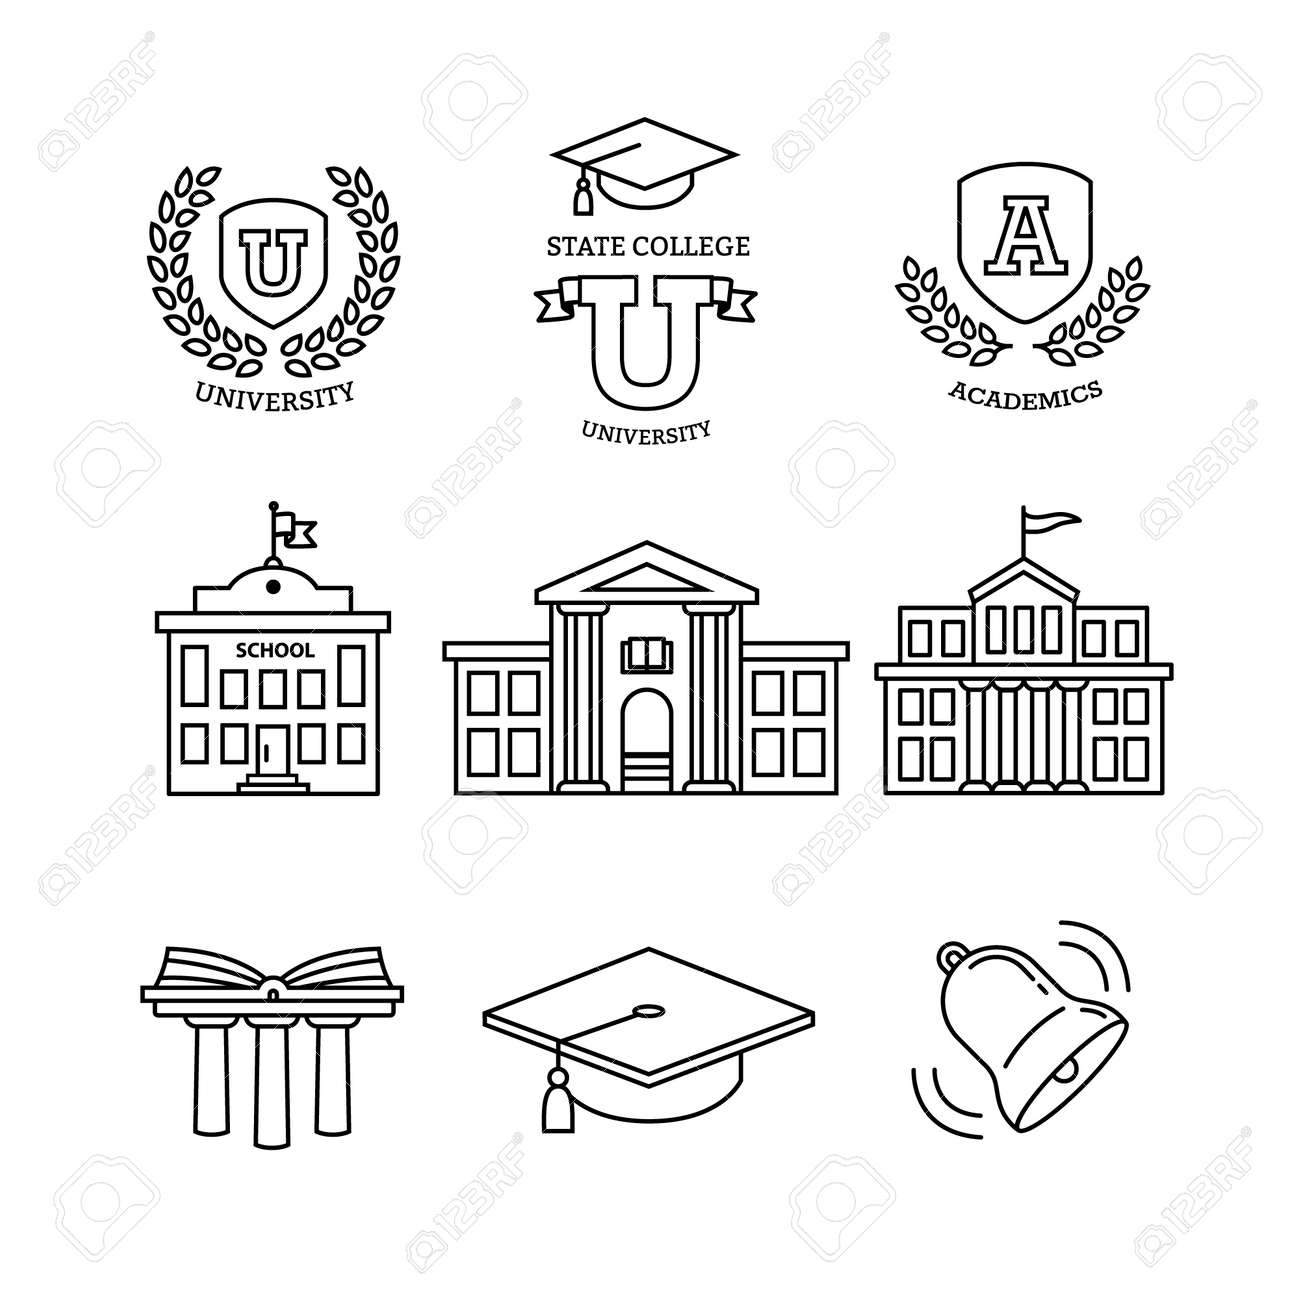 Mortar board, education, school, academy, college and university, library emblems and buildings. Thin line art icons set. Modern black symbols isolated on white for infographics or web use. - 52937870